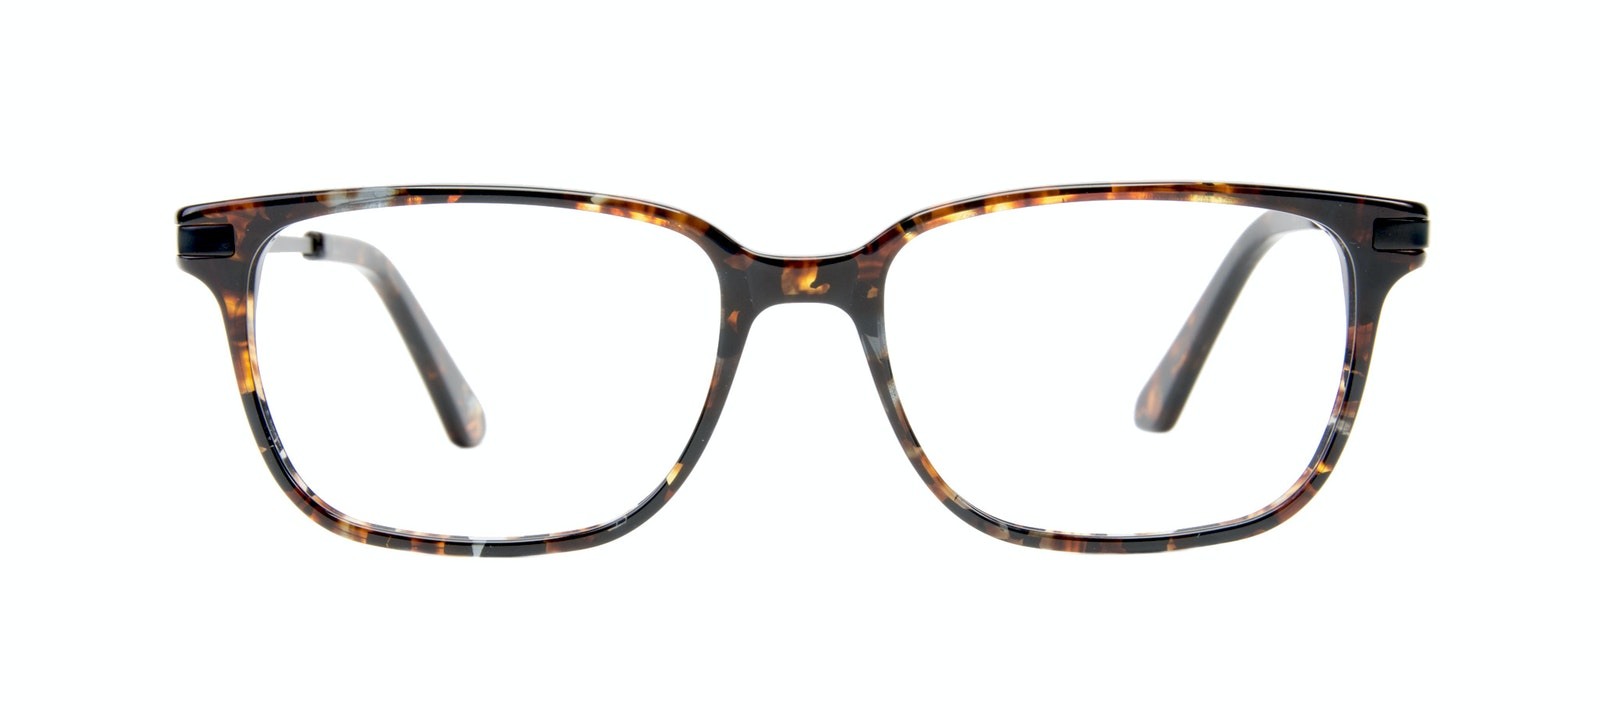 Affordable Fashion Glasses Rectangle Eyeglasses Men Trade Mahogany Front